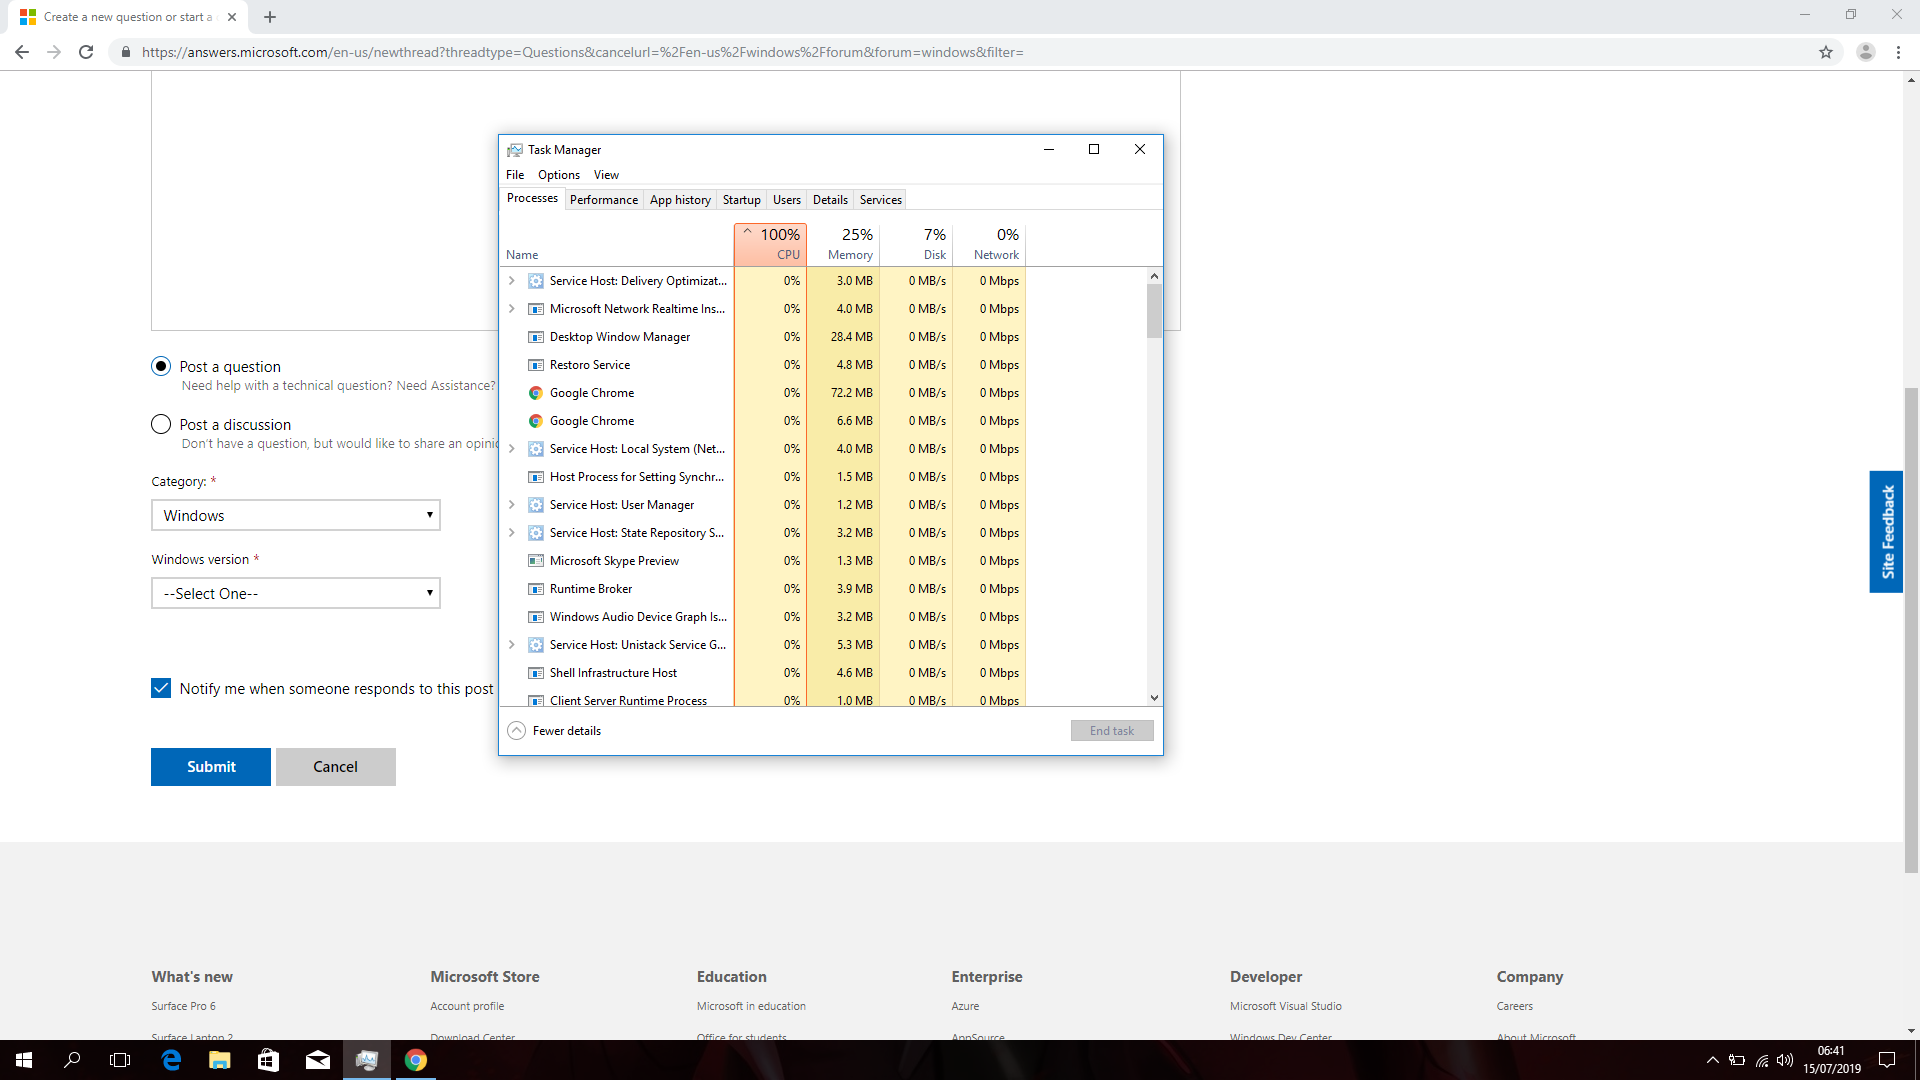 100% CPU usage after PC factory reset 933c9a78-e6a7-4c99-9b01-dbd5cdfd0018?upload=true.png